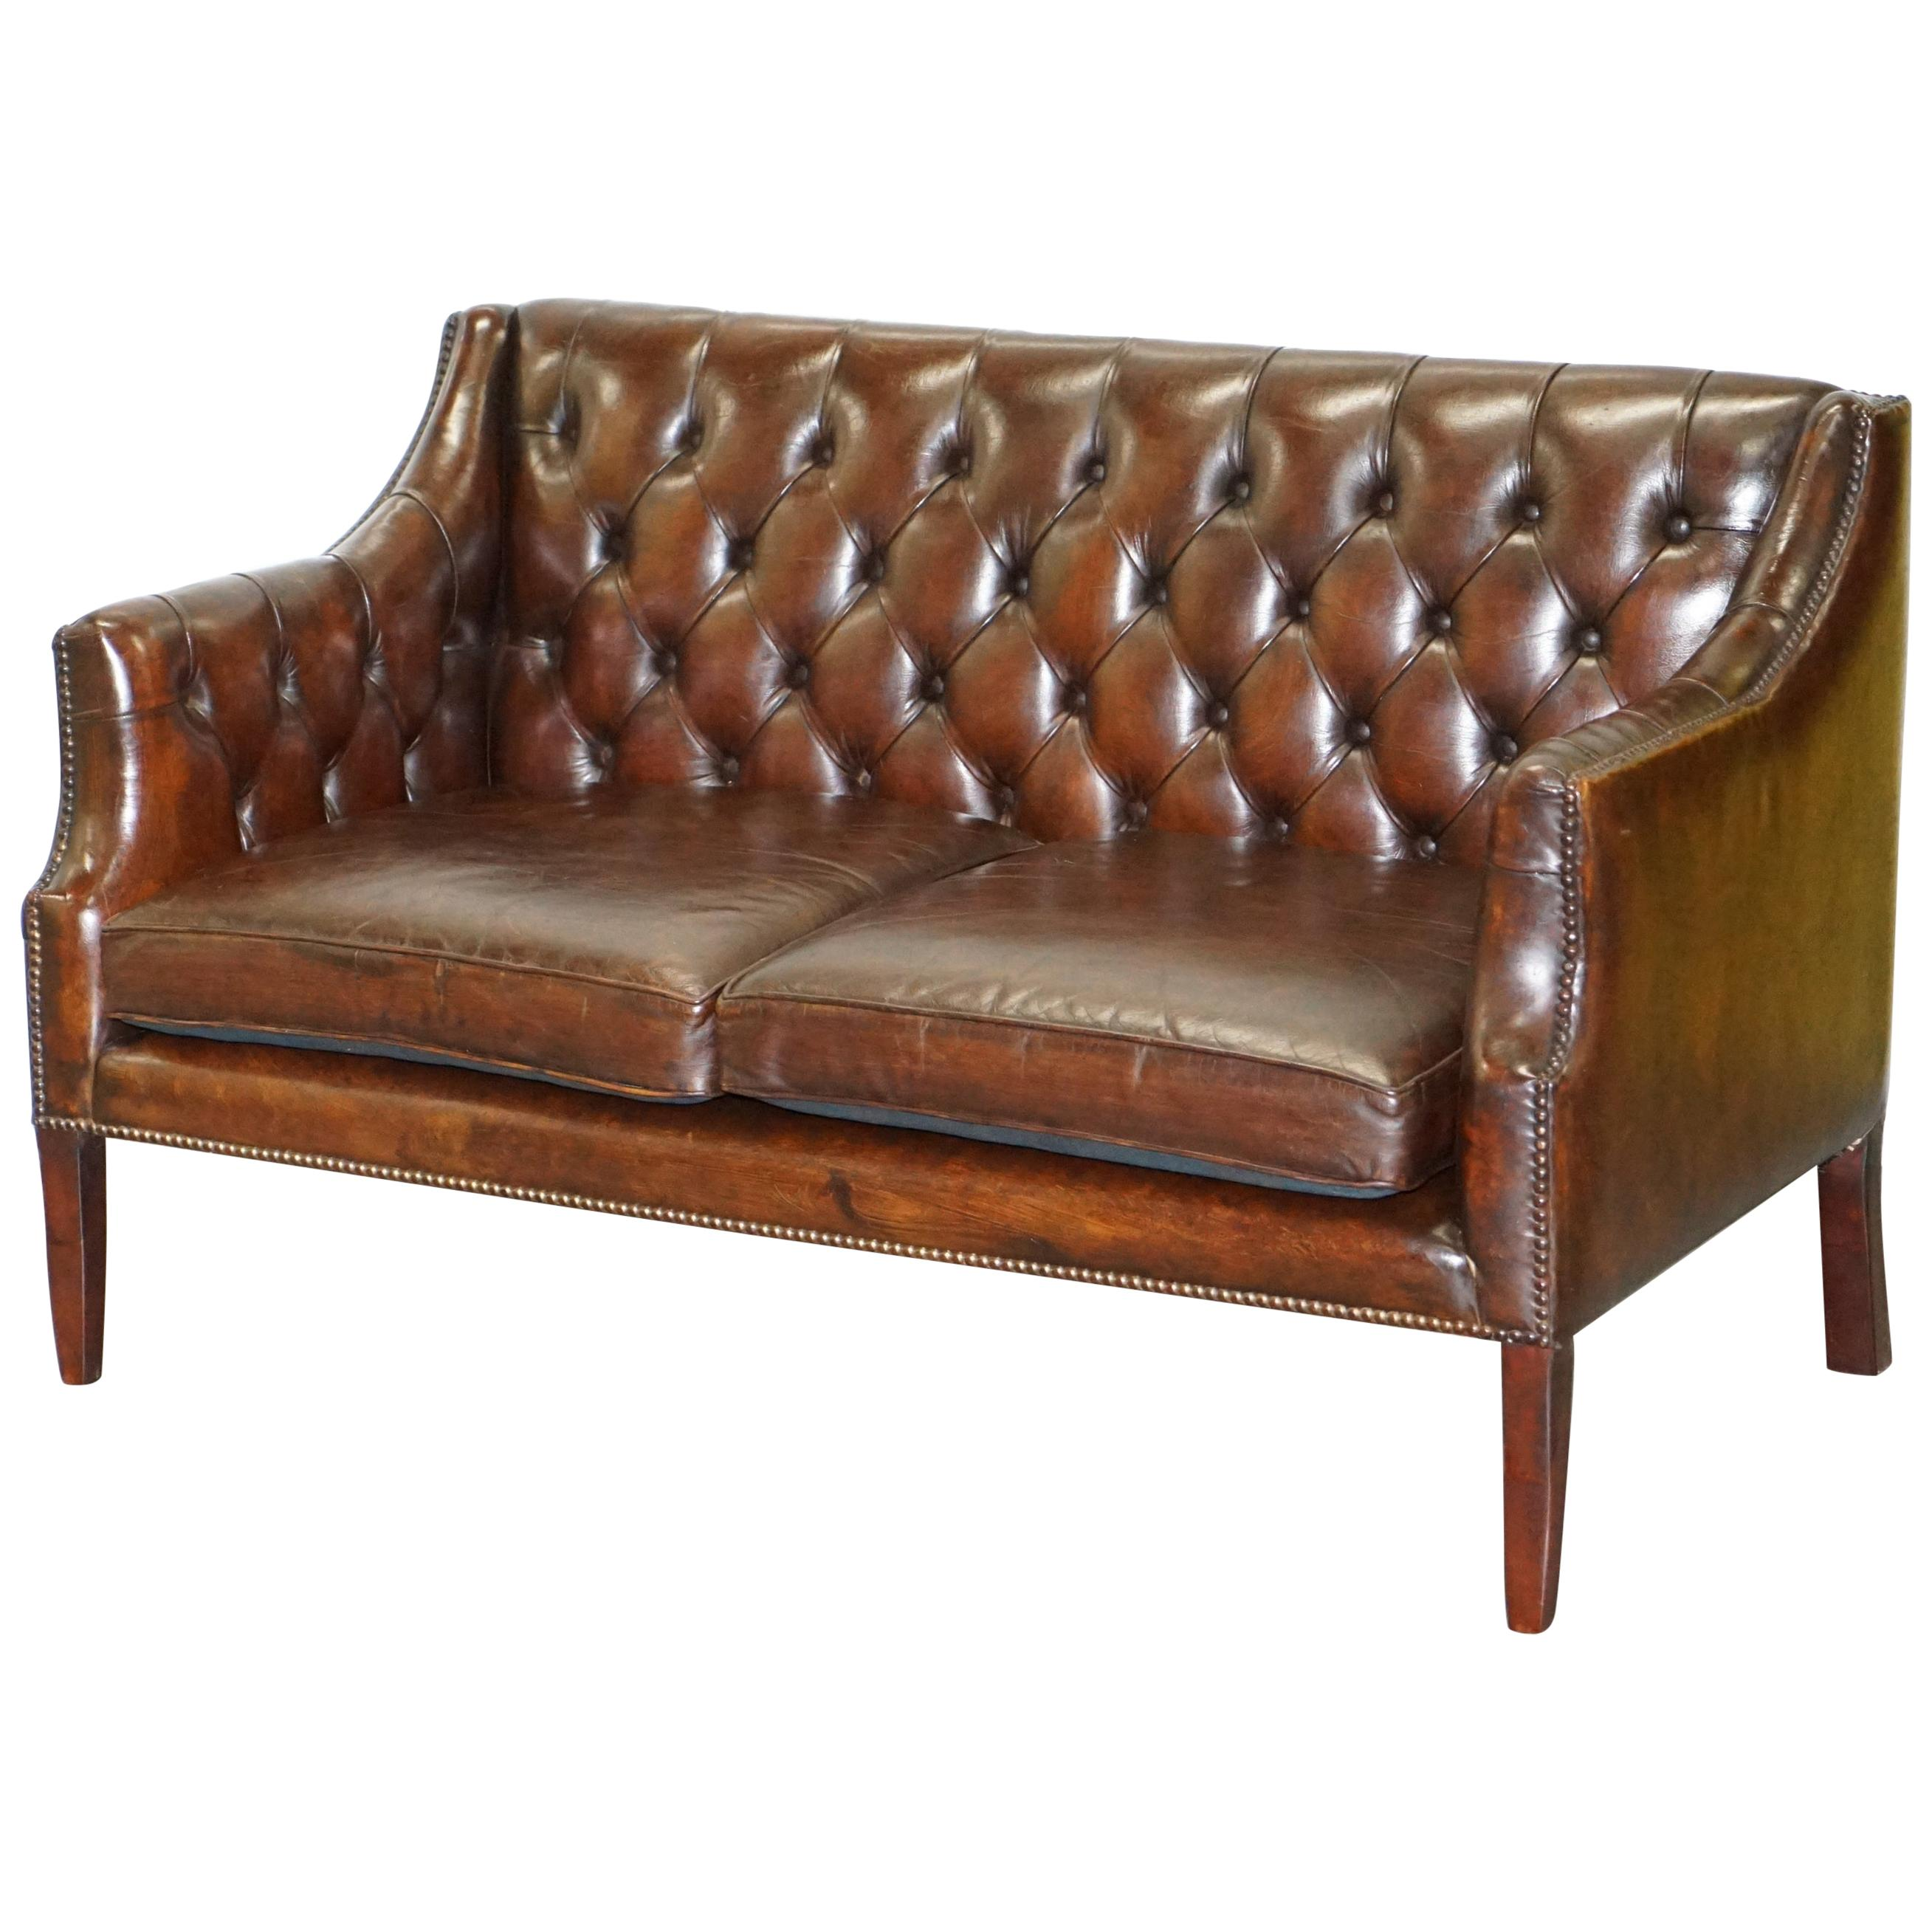 Restored Lutyen's Viceroy Chesterfield Brown Leather Two-Seat Sofa